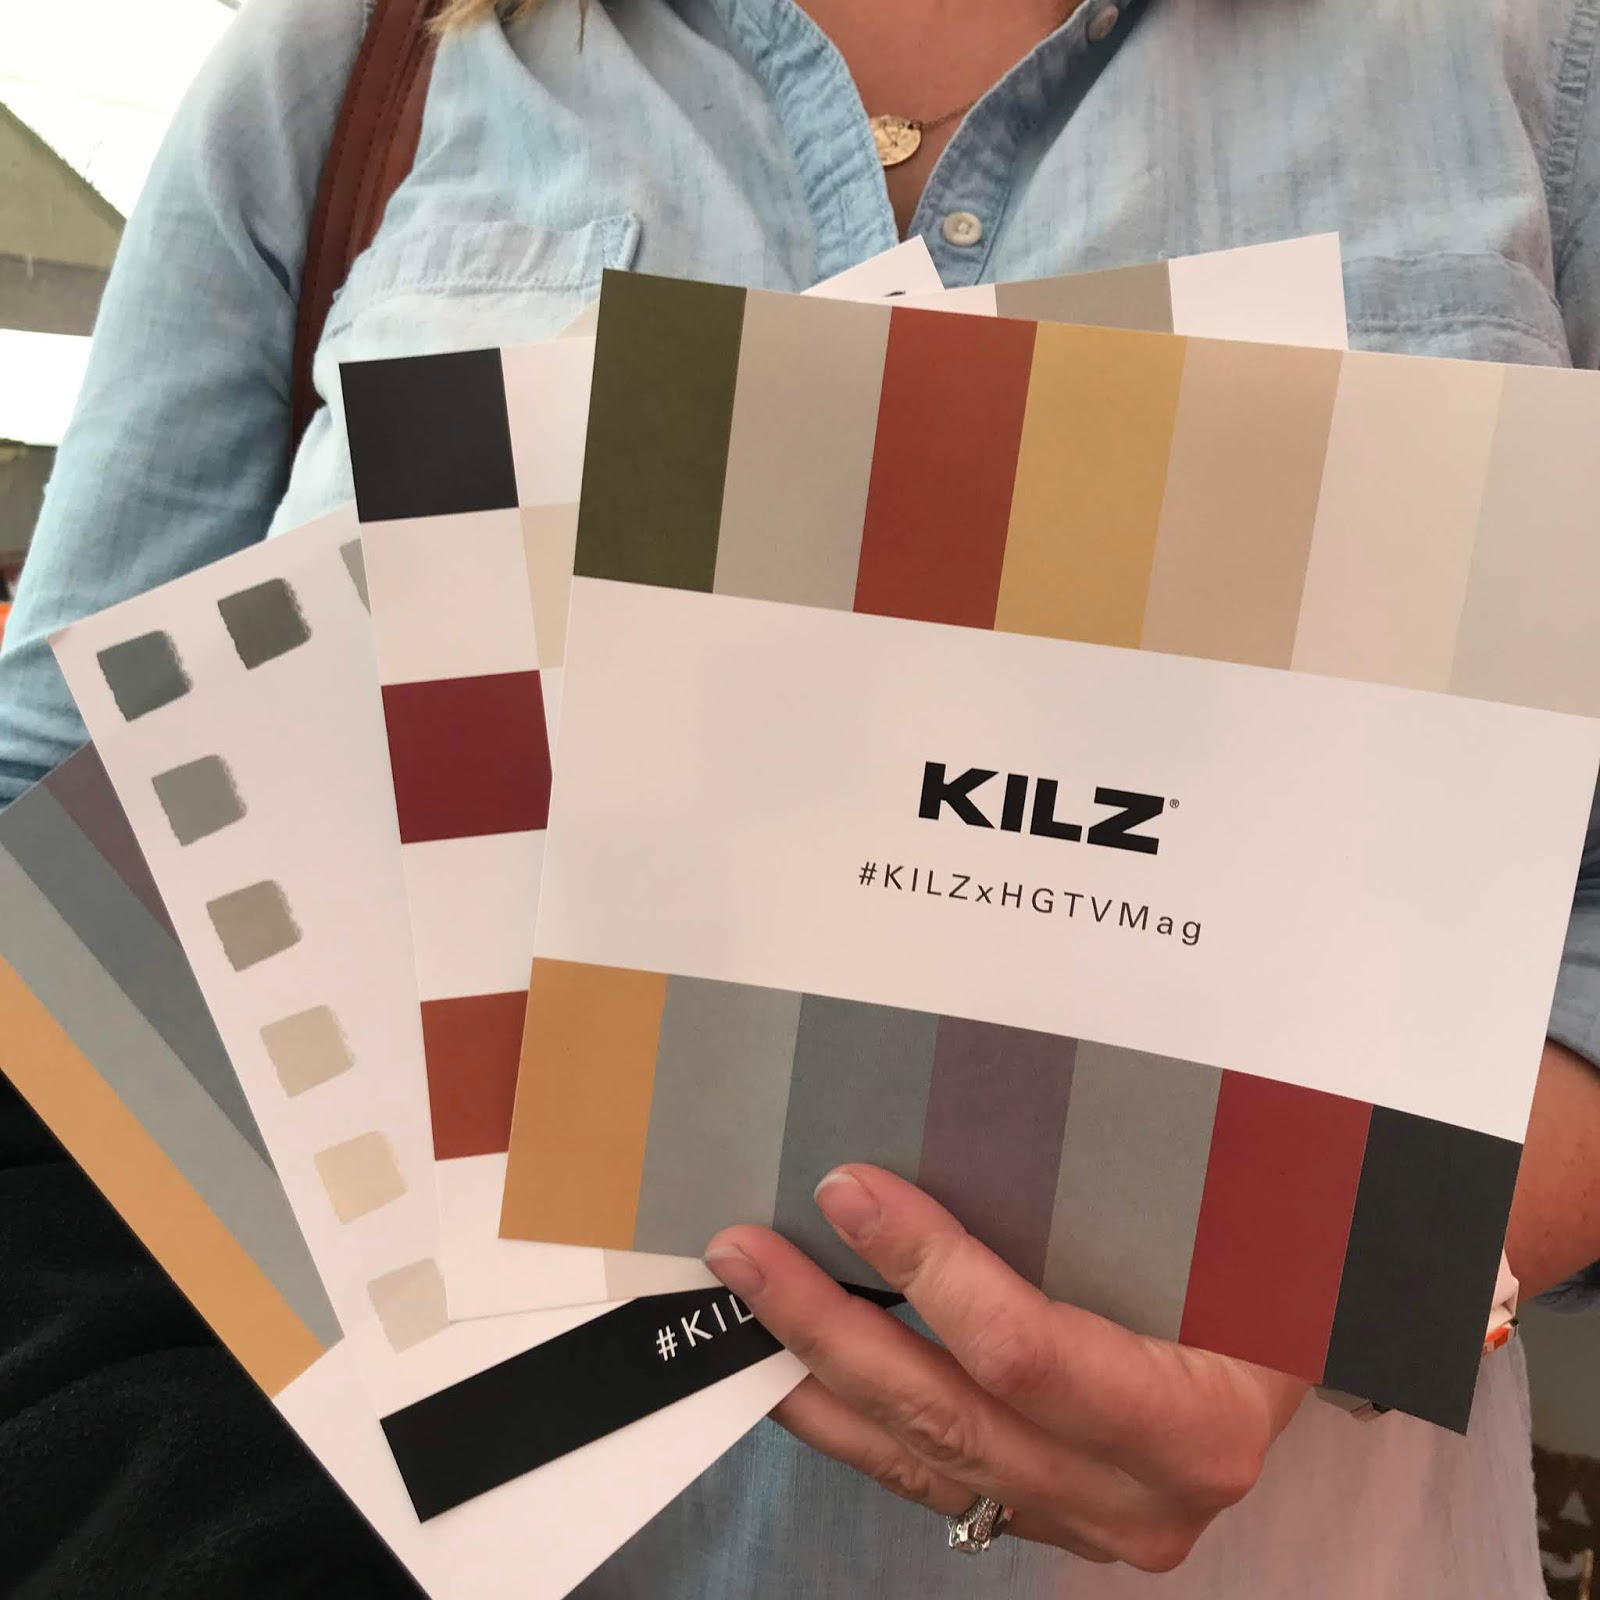 Joanna Gaines paint line from Kilz